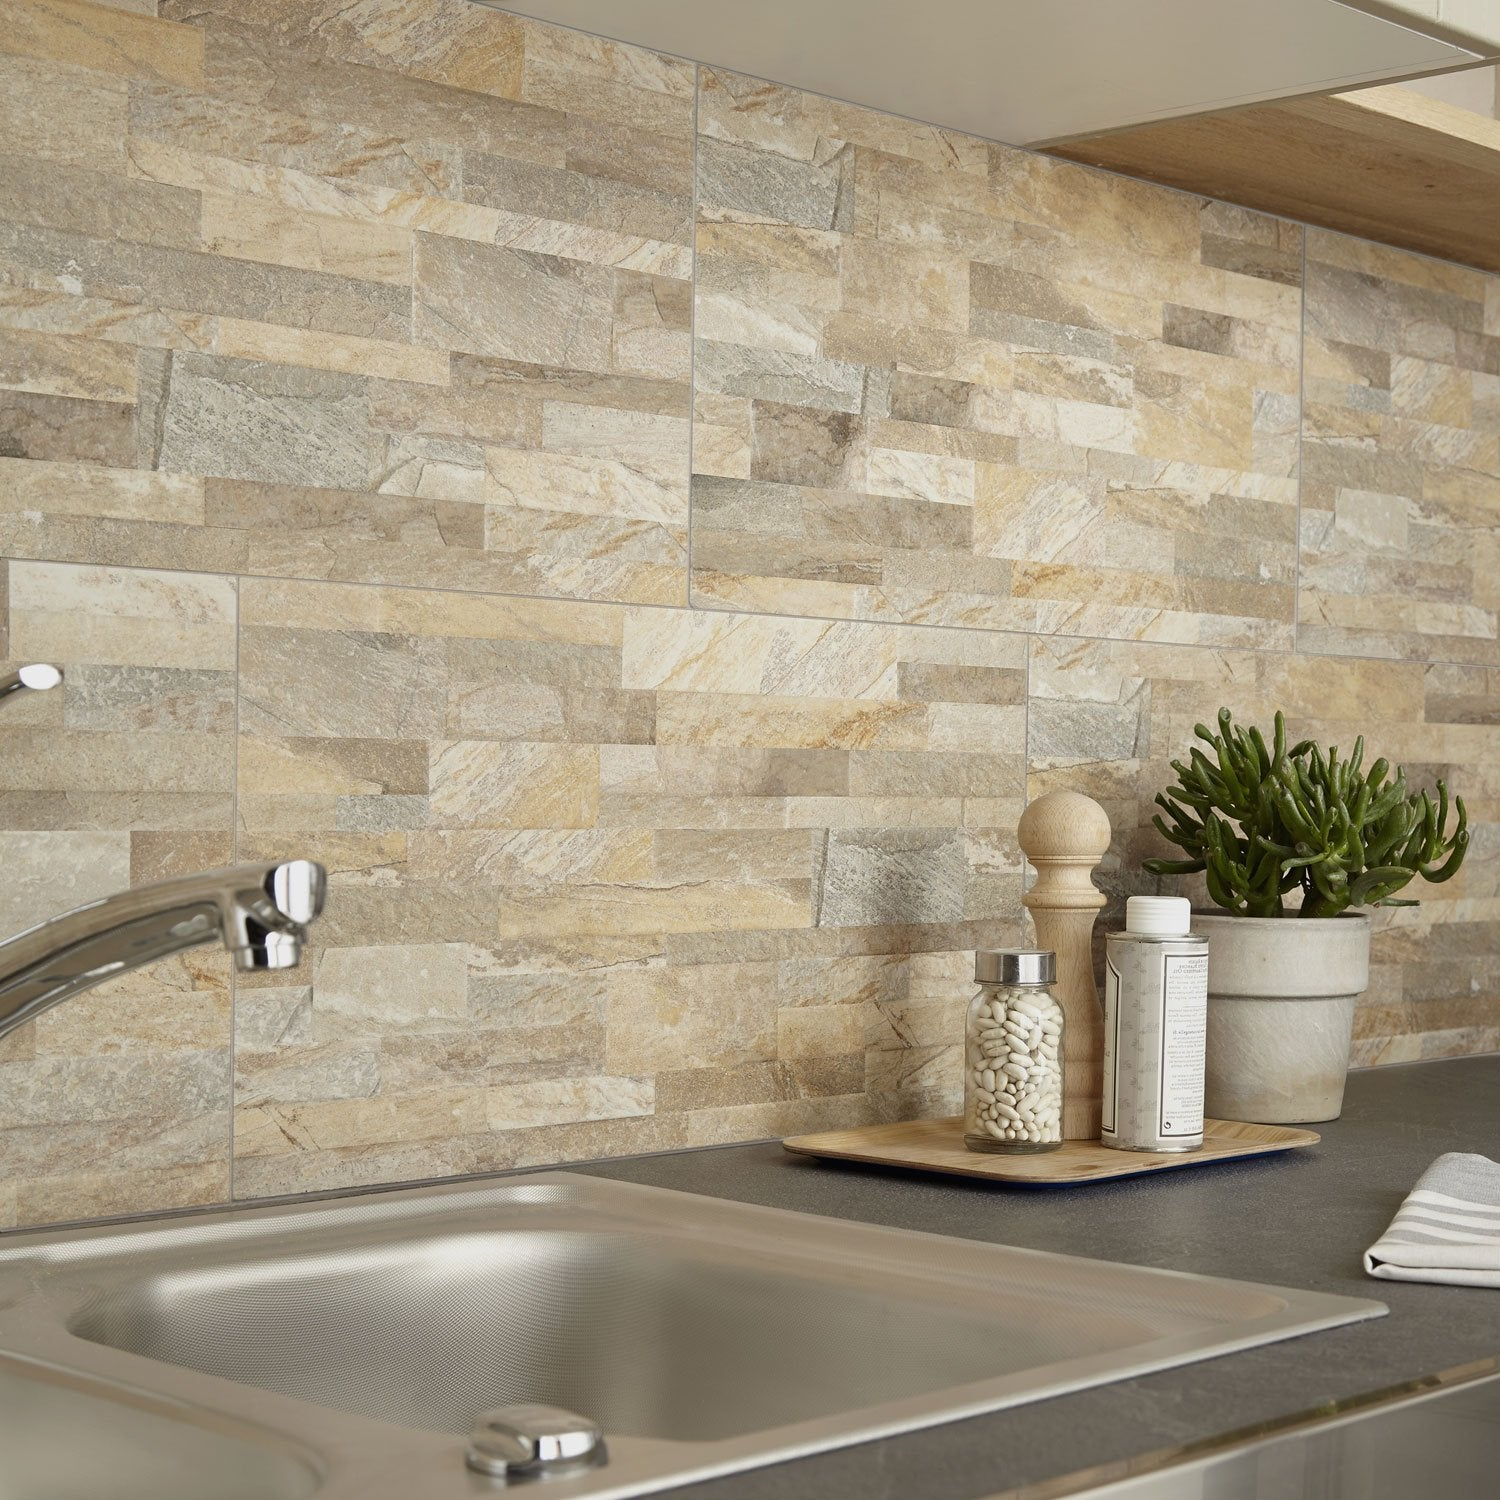 Carrelage mur ocre muretto x cm leroy merlin - Smart tiles chez leroy merlin ...